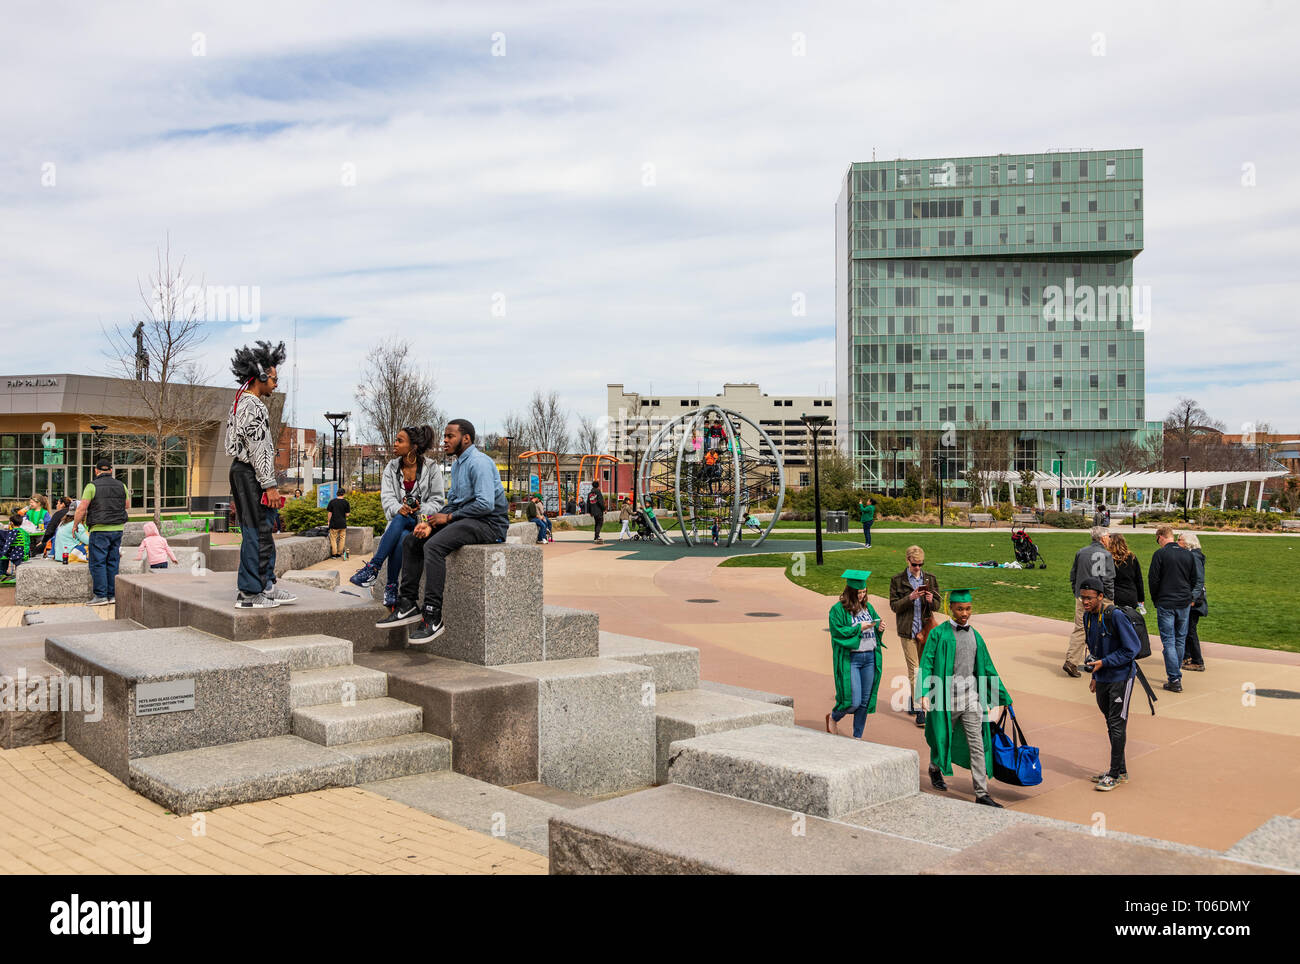 CHARLOTTE, NC, USA-3/16/19: A busy 1st Ward Park on a sunny spring day. Stock Photo